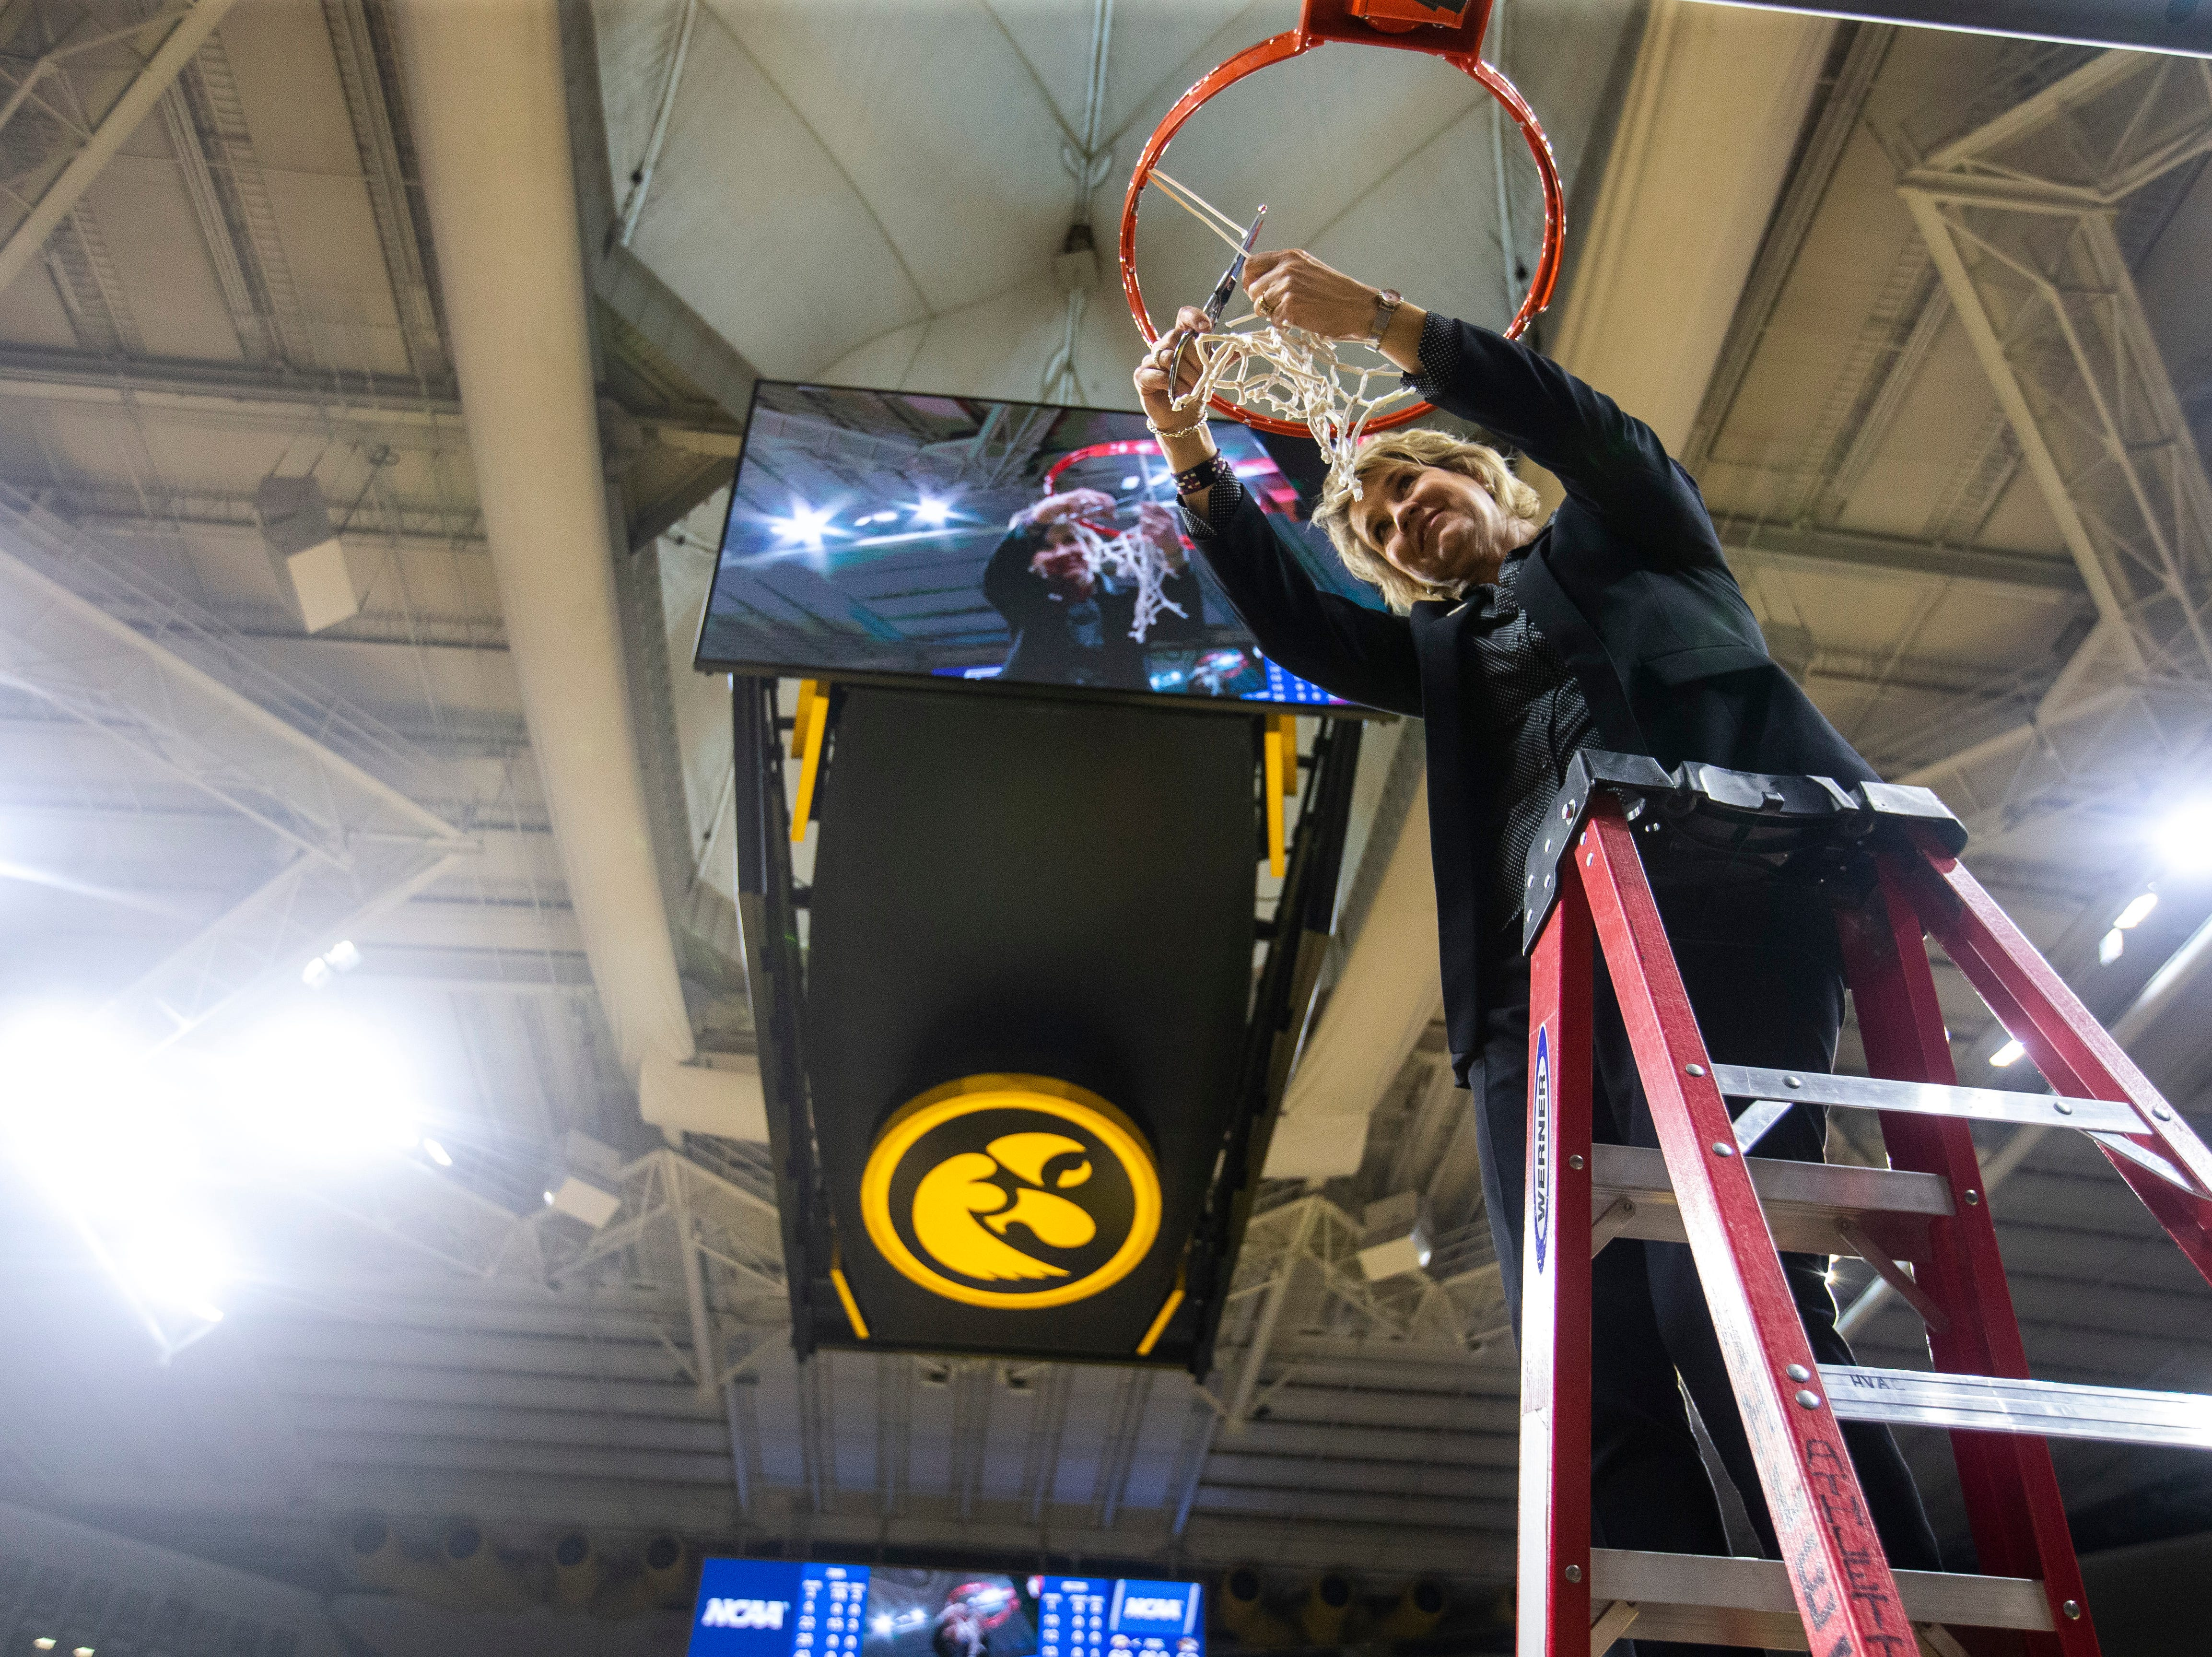 Iowa head coach Lisa Bluder cuts down the nets on the court after a NCAA women's basketball tournament second-round game, Sunday, March 24, 2019, at Carver-Hawkeye Arena in Iowa City, Iowa.